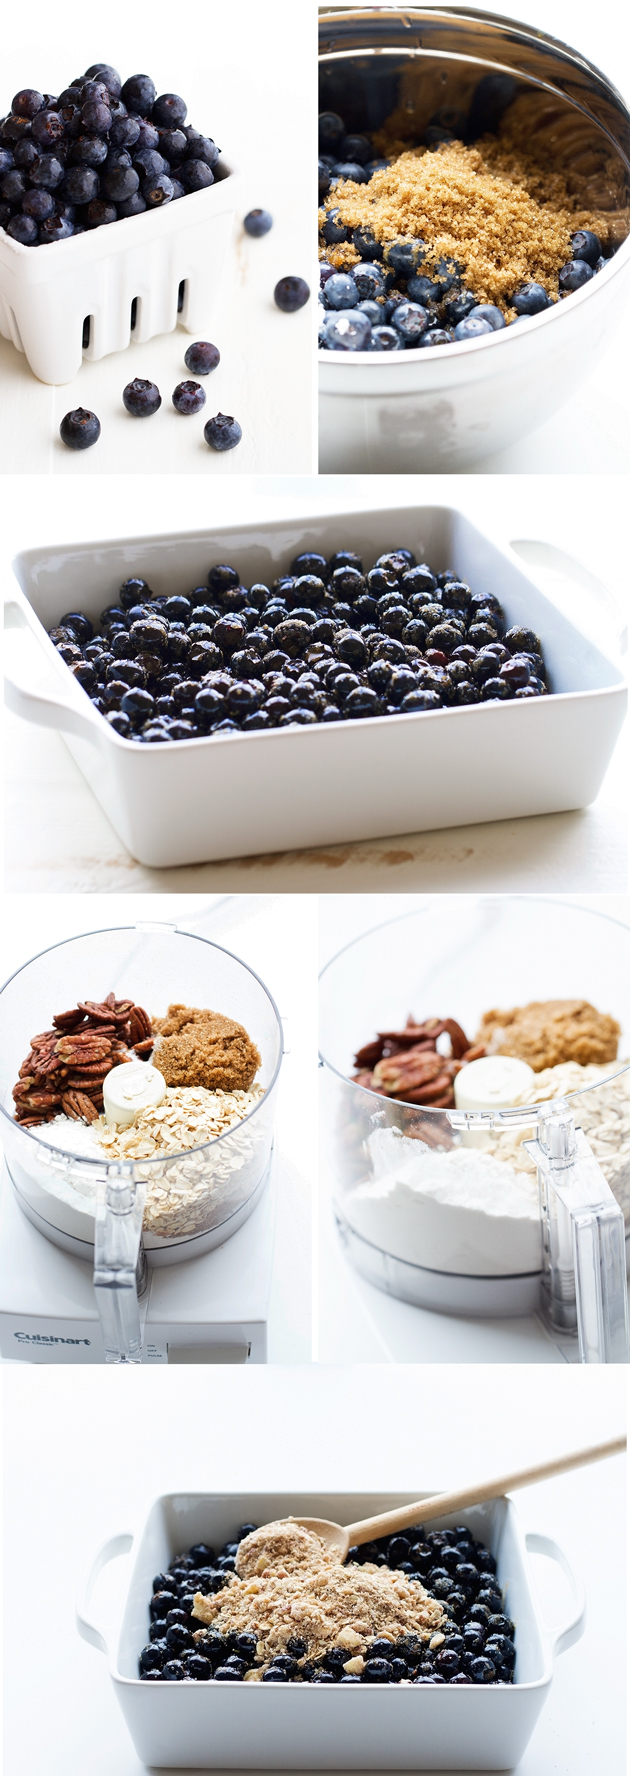 Quick and Easy Blueberry Crisp with Oats and Pecans! This is the simplest, most delicious dessert ever! #blueberries #blueberrycrisp #blueberrycrumble #summer   Littlespicejar.com